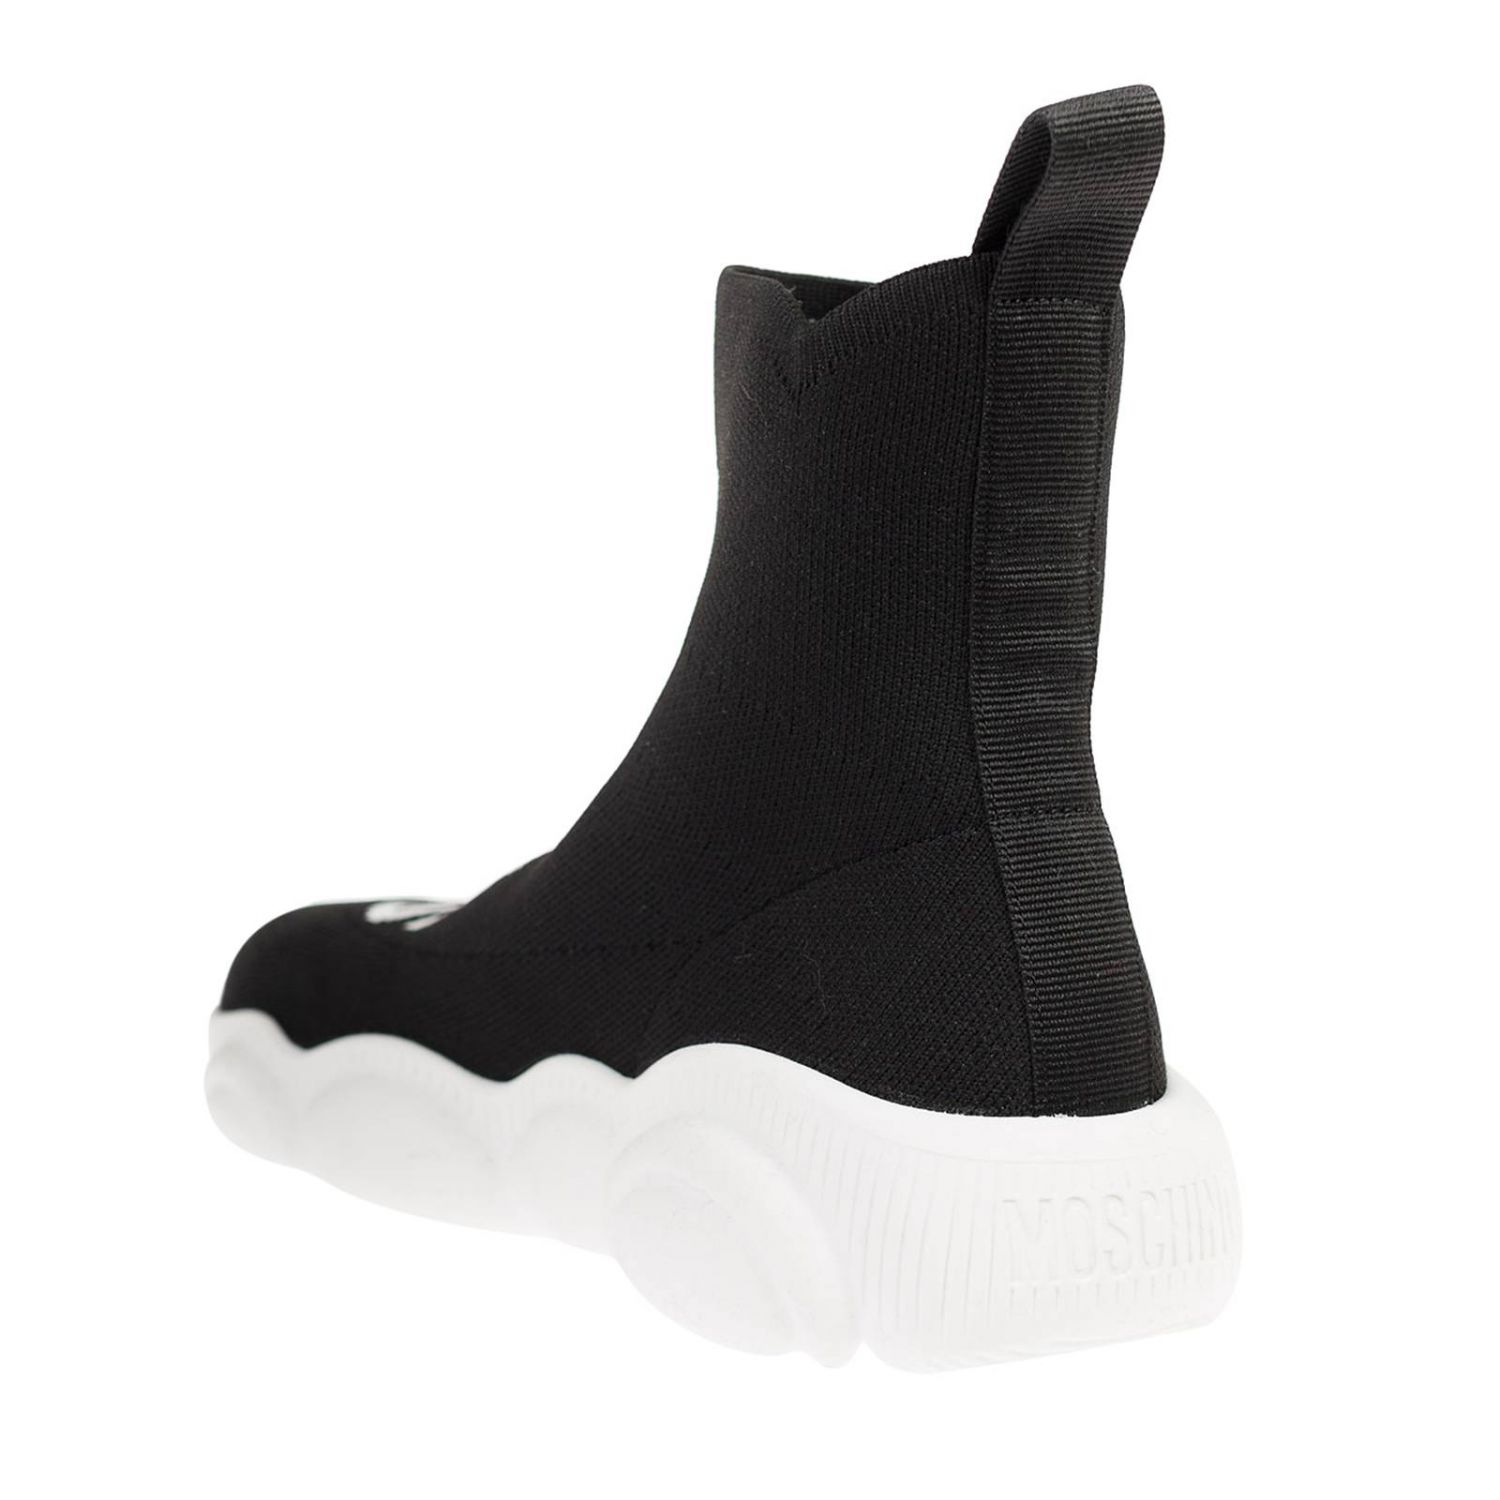 Sneakers Moschino Couture slip on a calza nero 3